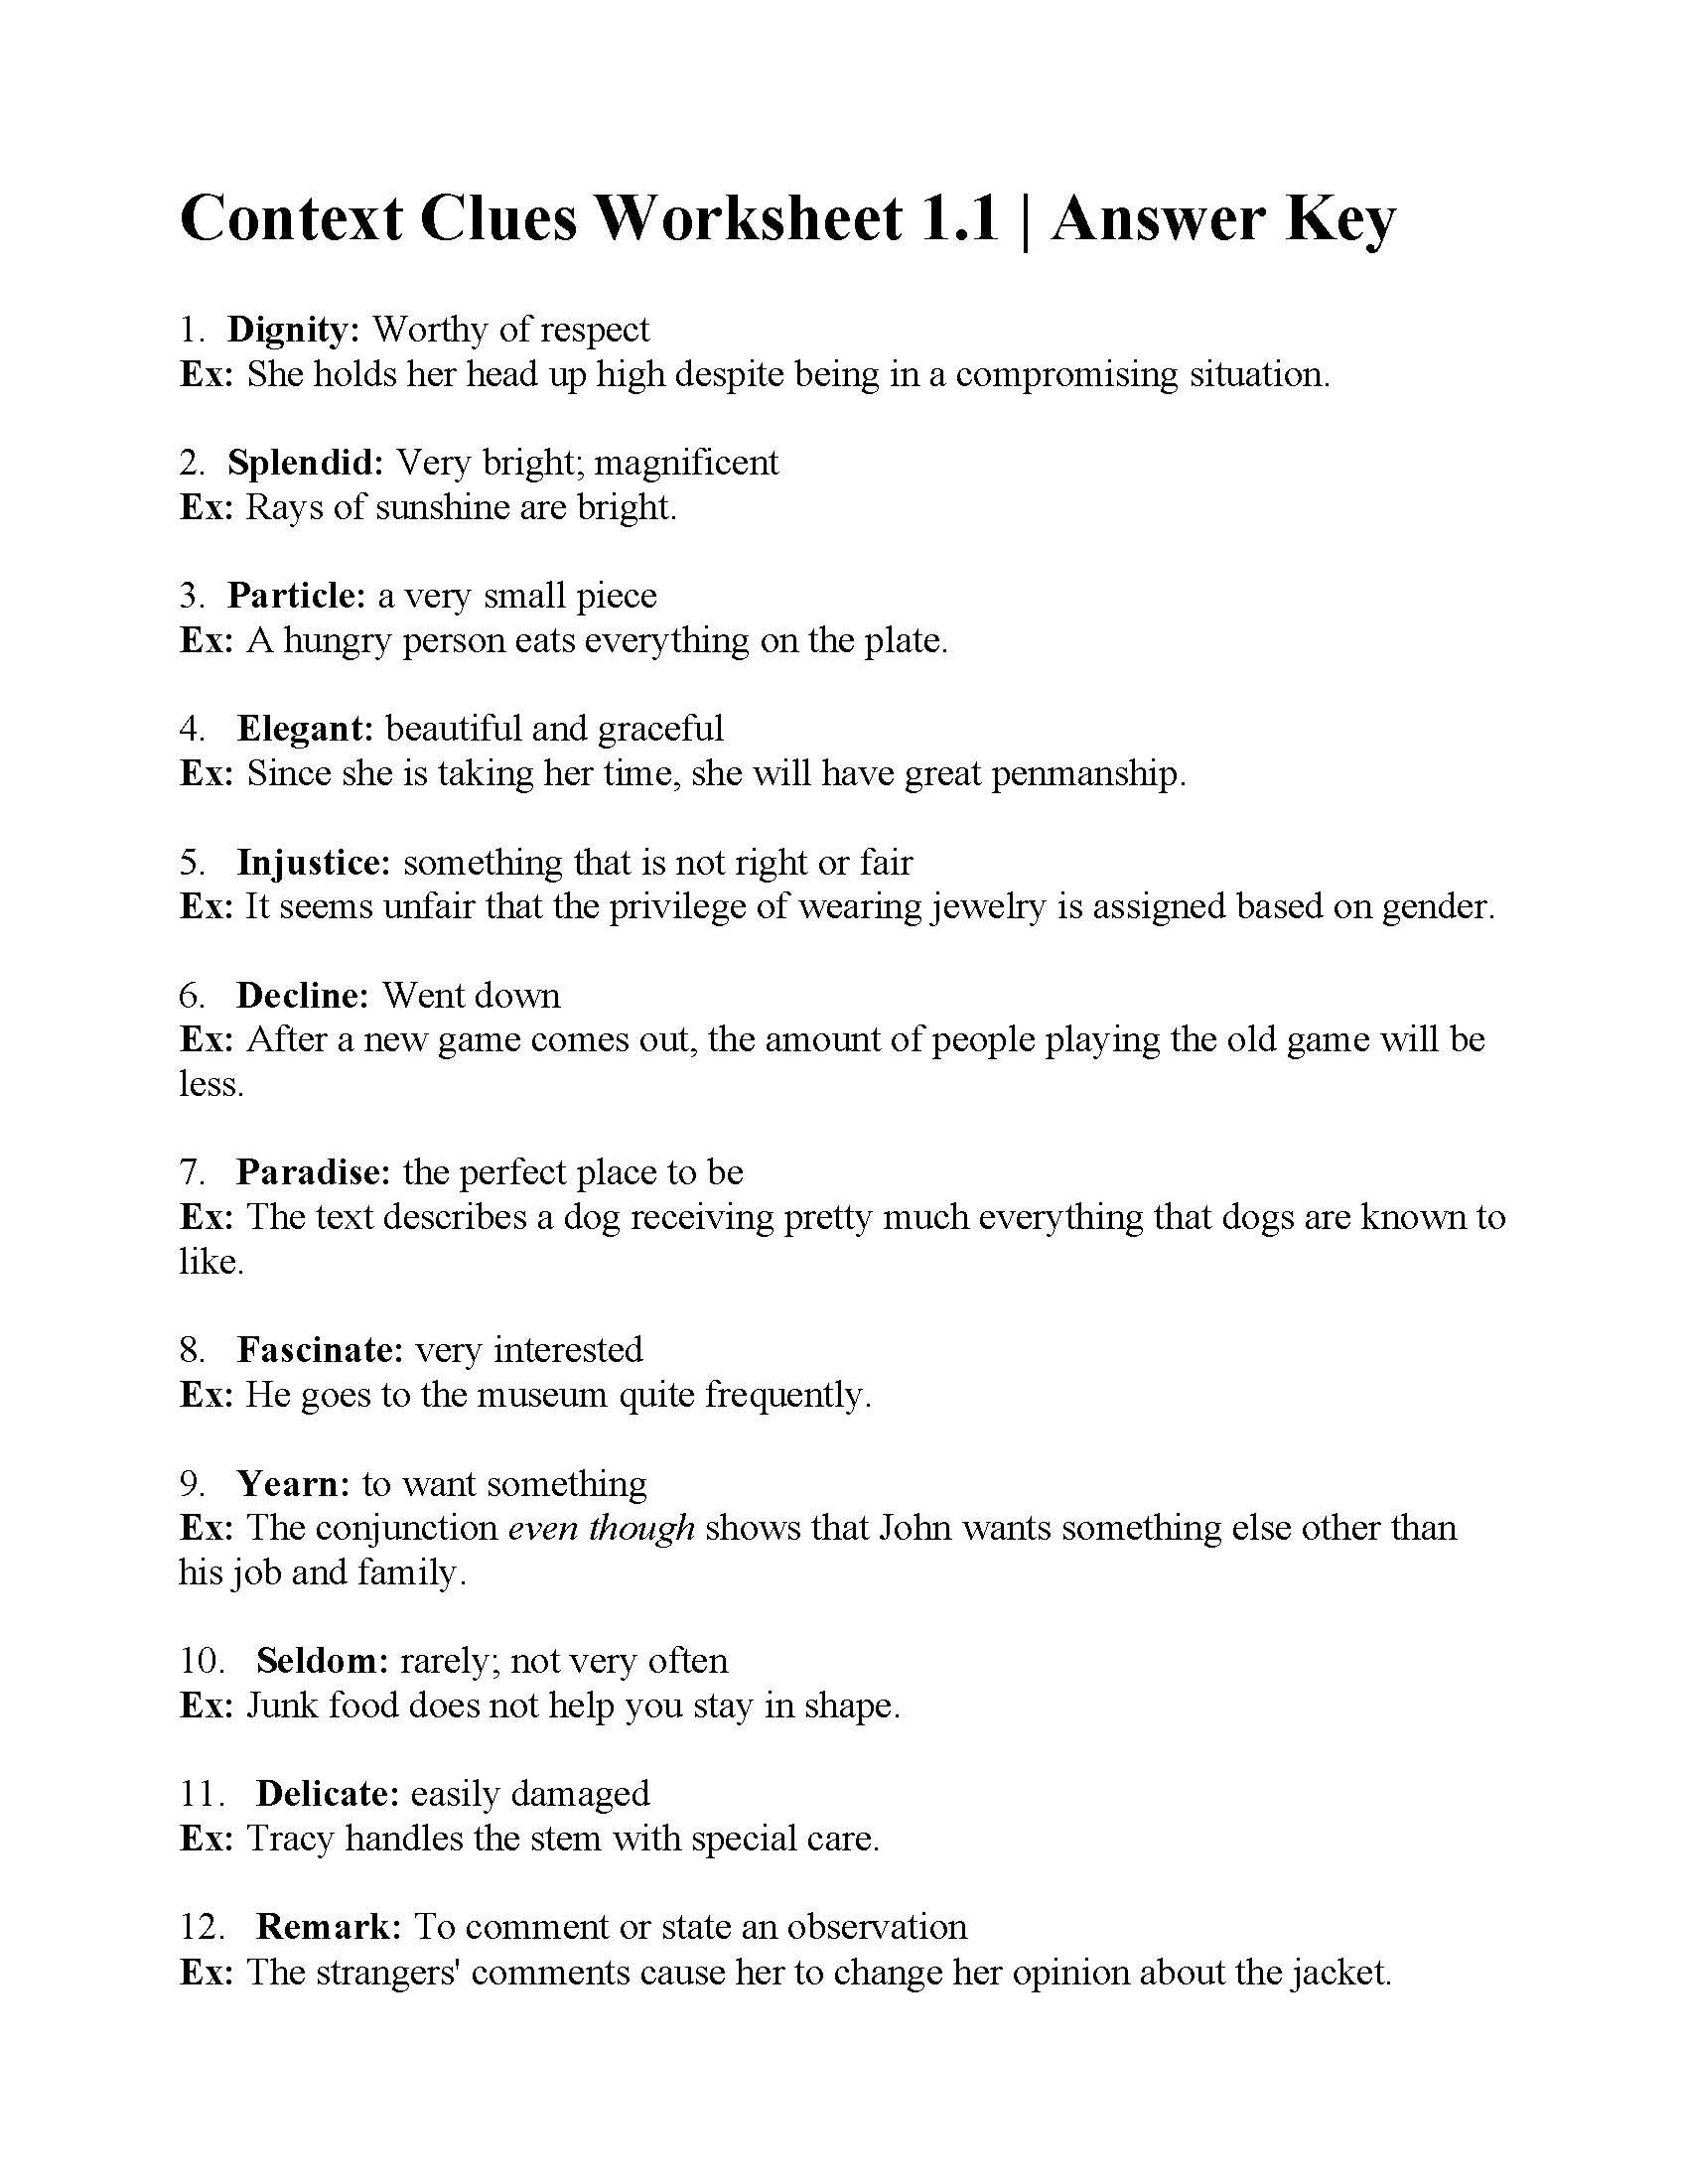 Context Clues 5th Grade Worksheets 38 Interesting Context Clues Worksheets